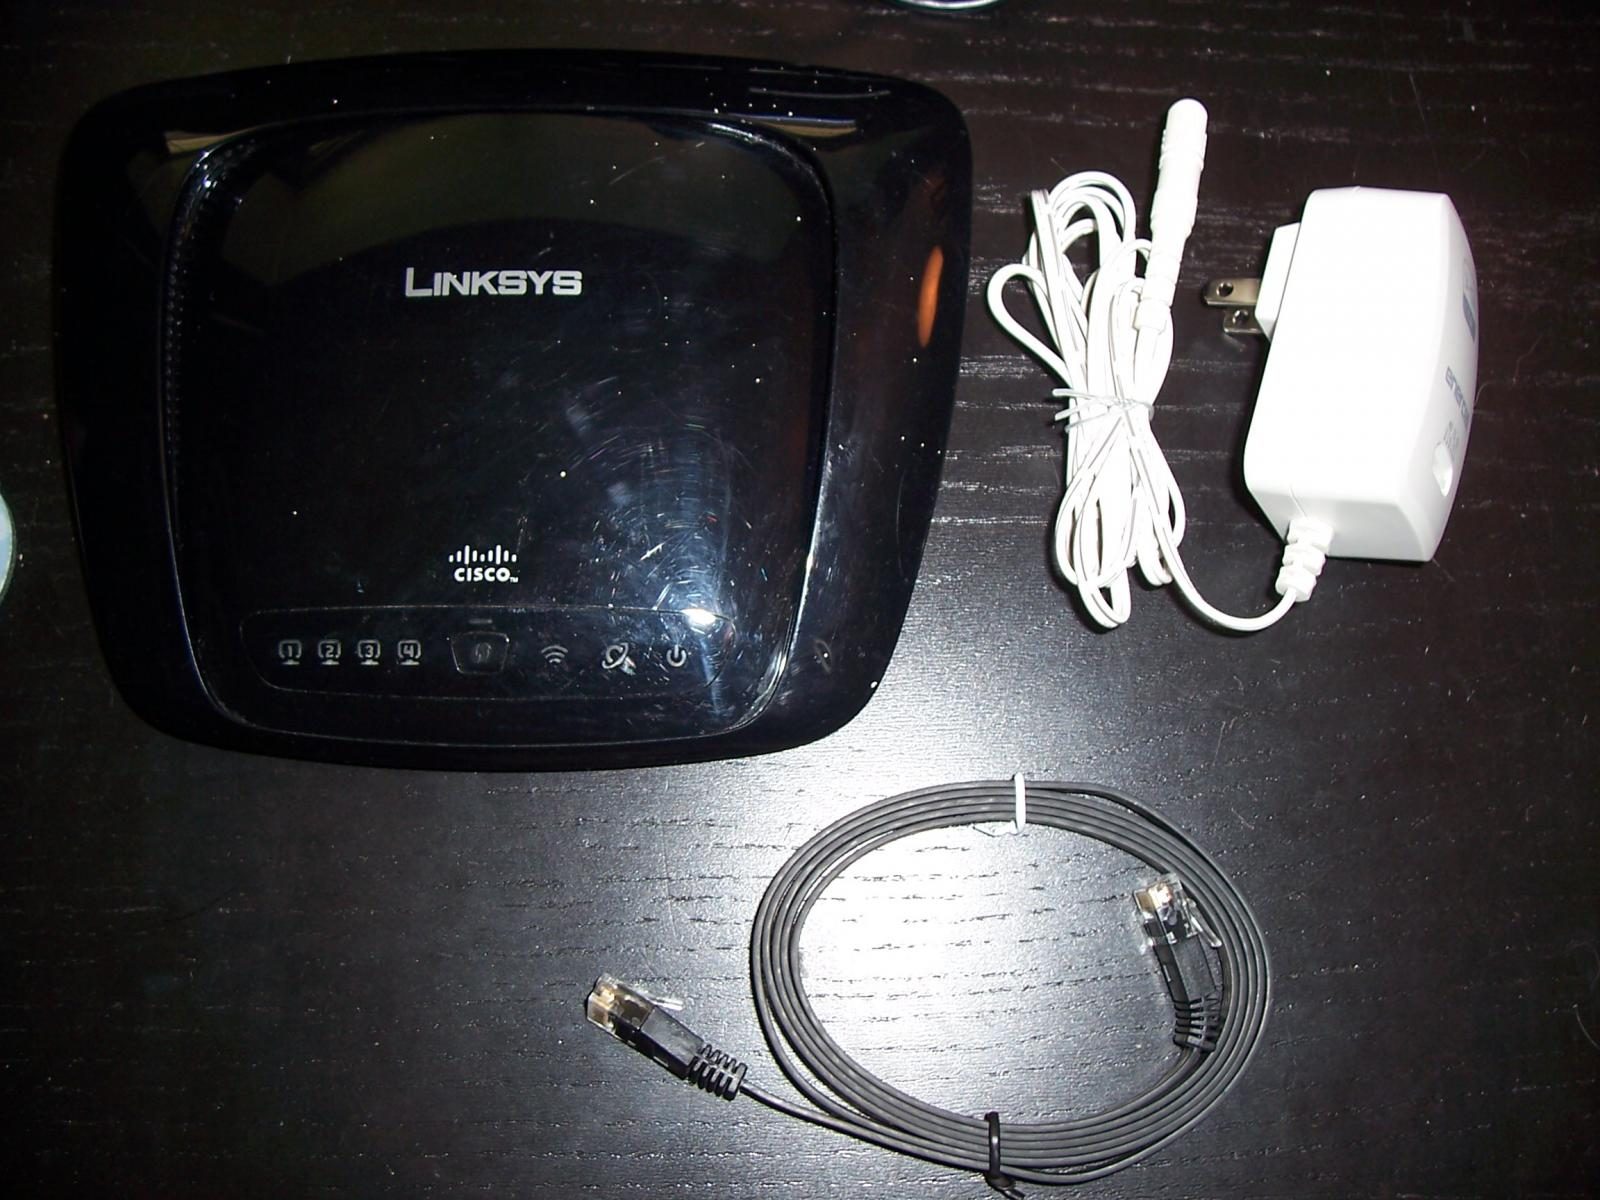 Photo of Linksys WRT160N wifi router 802.11n 2.4GHz